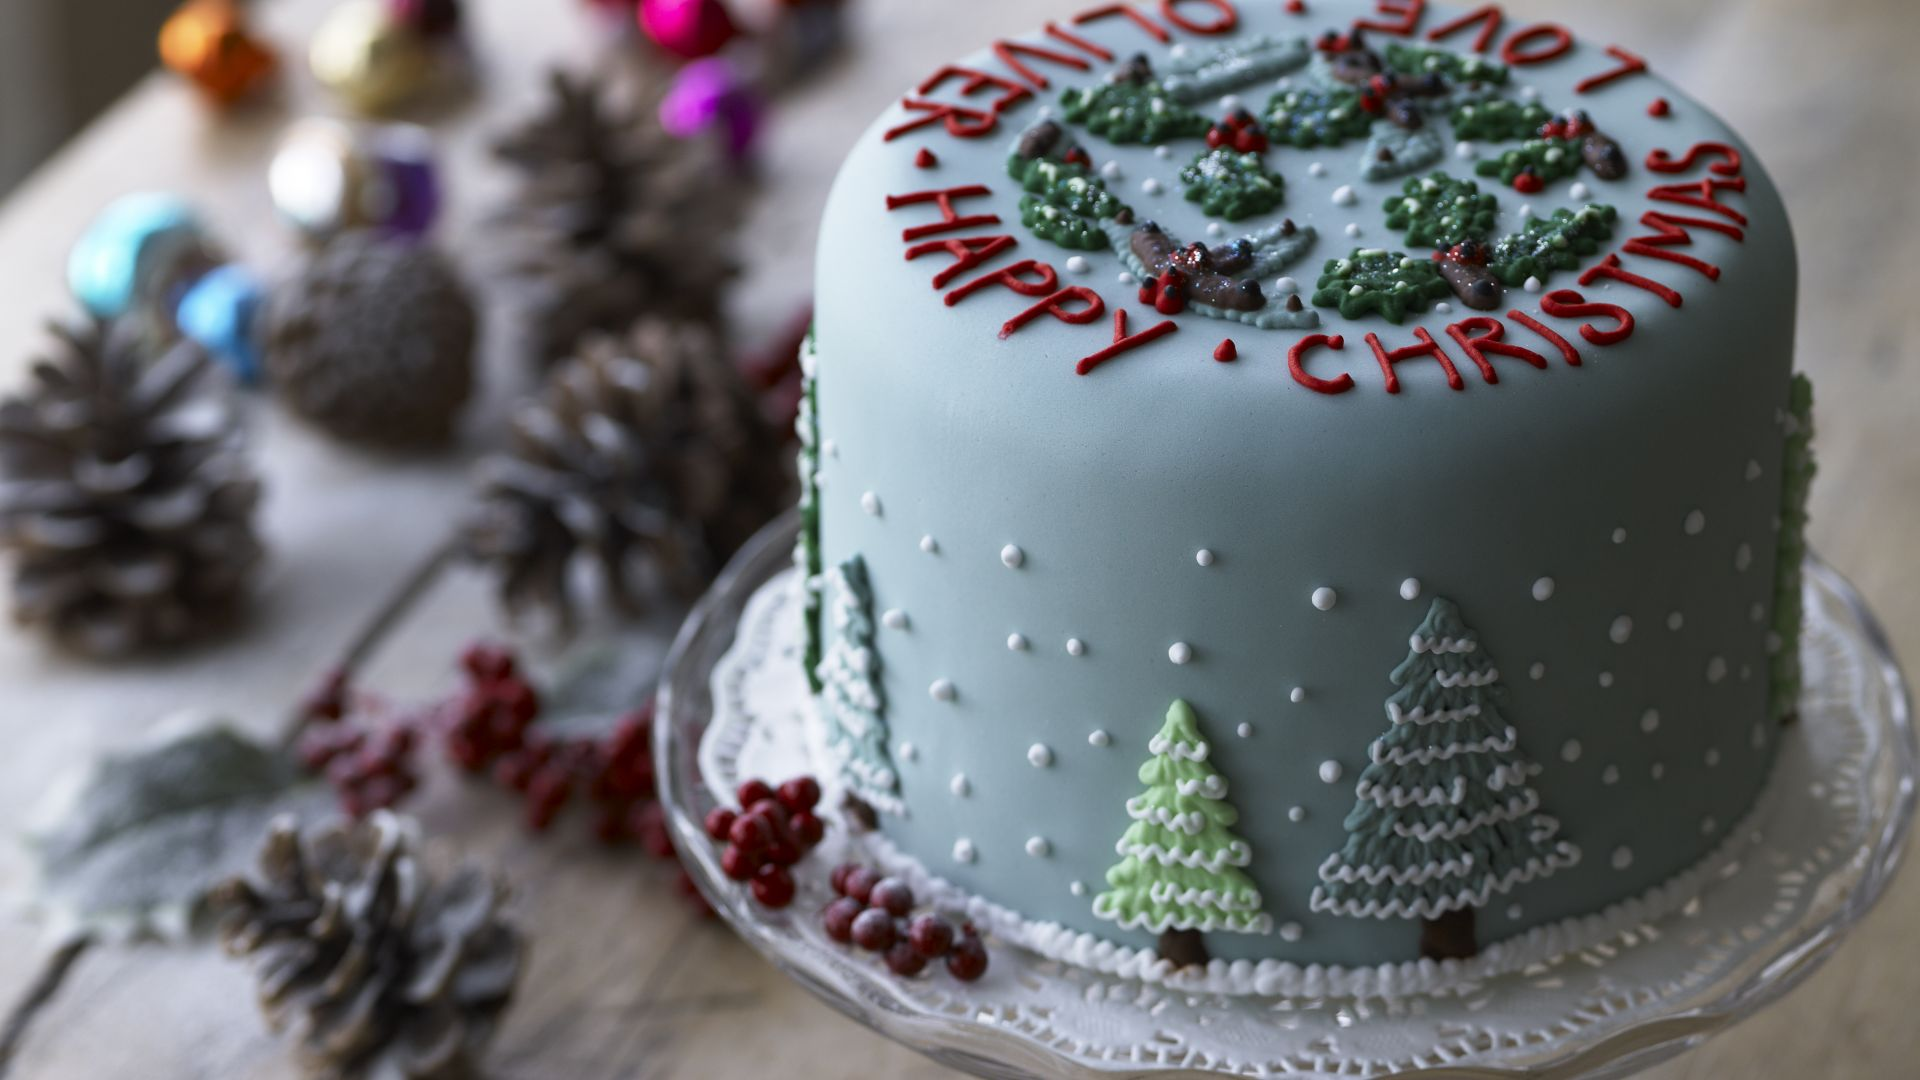 christmas cake, receipt, 5k (horizontal)